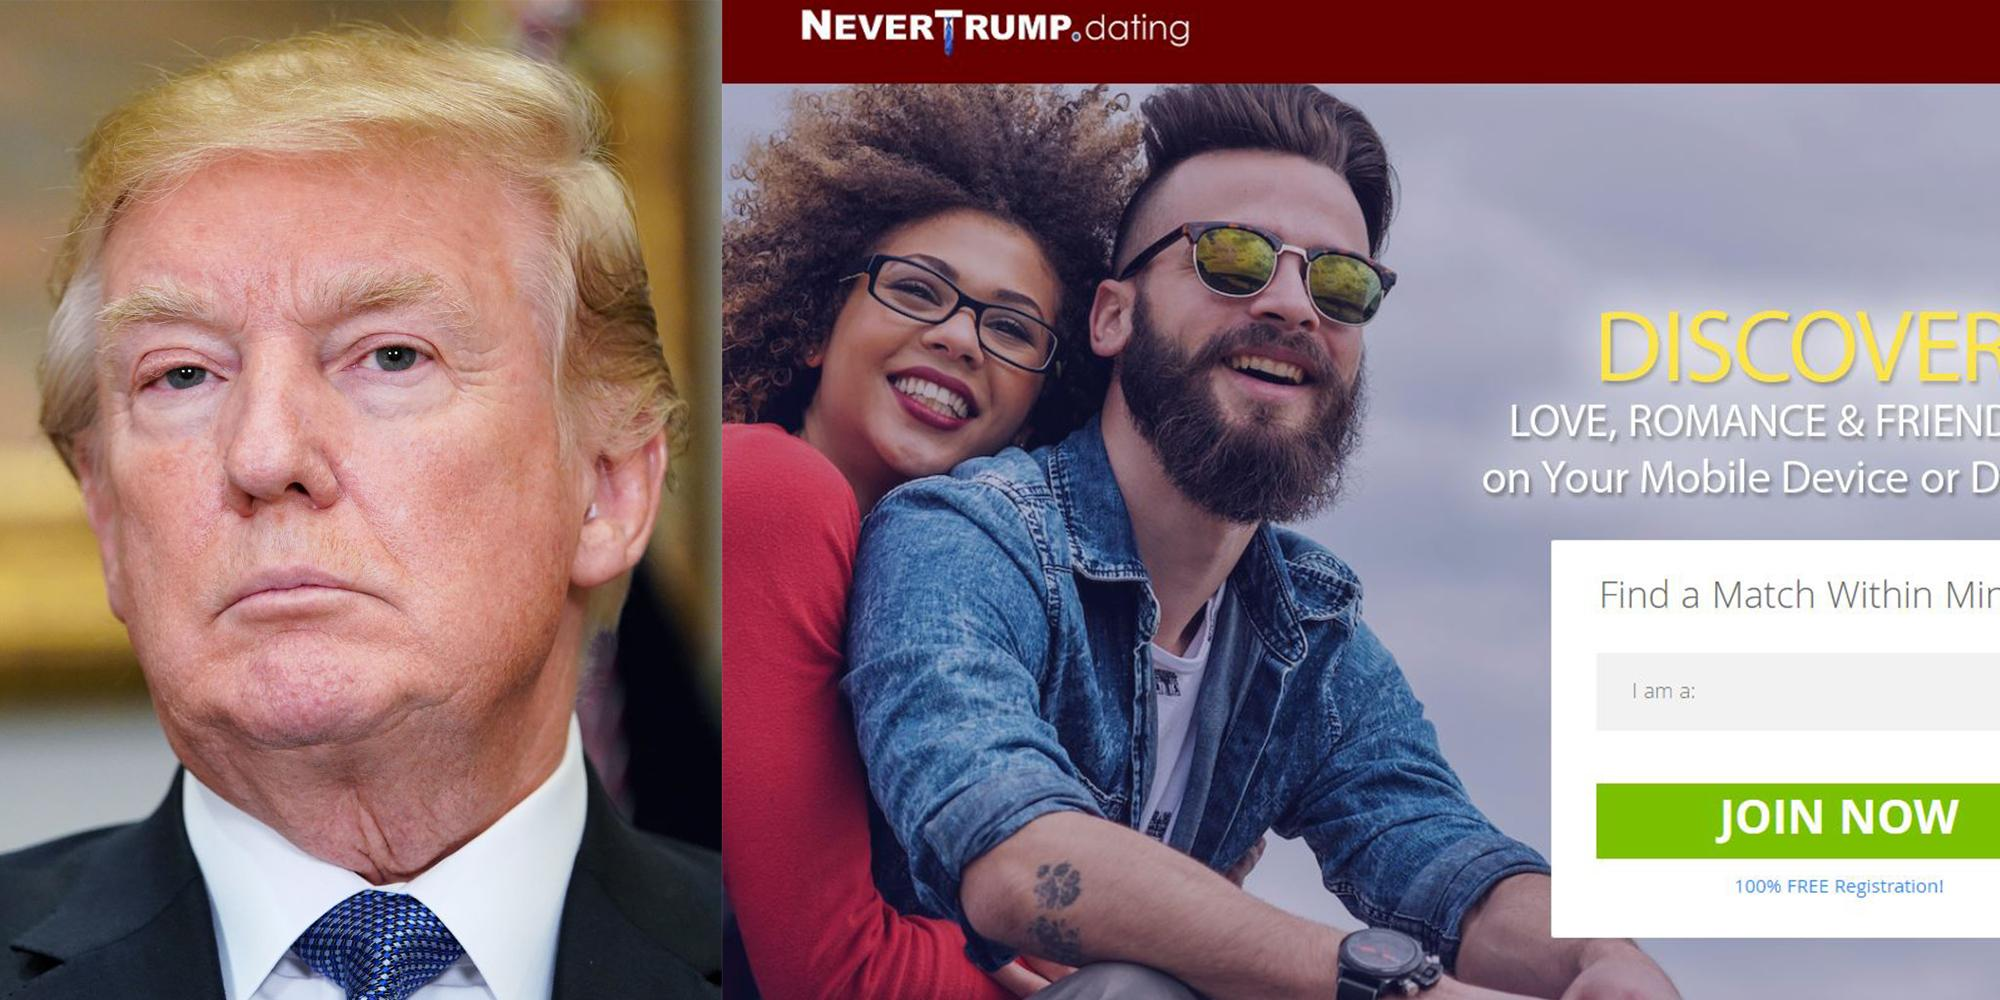 Never trump dating site